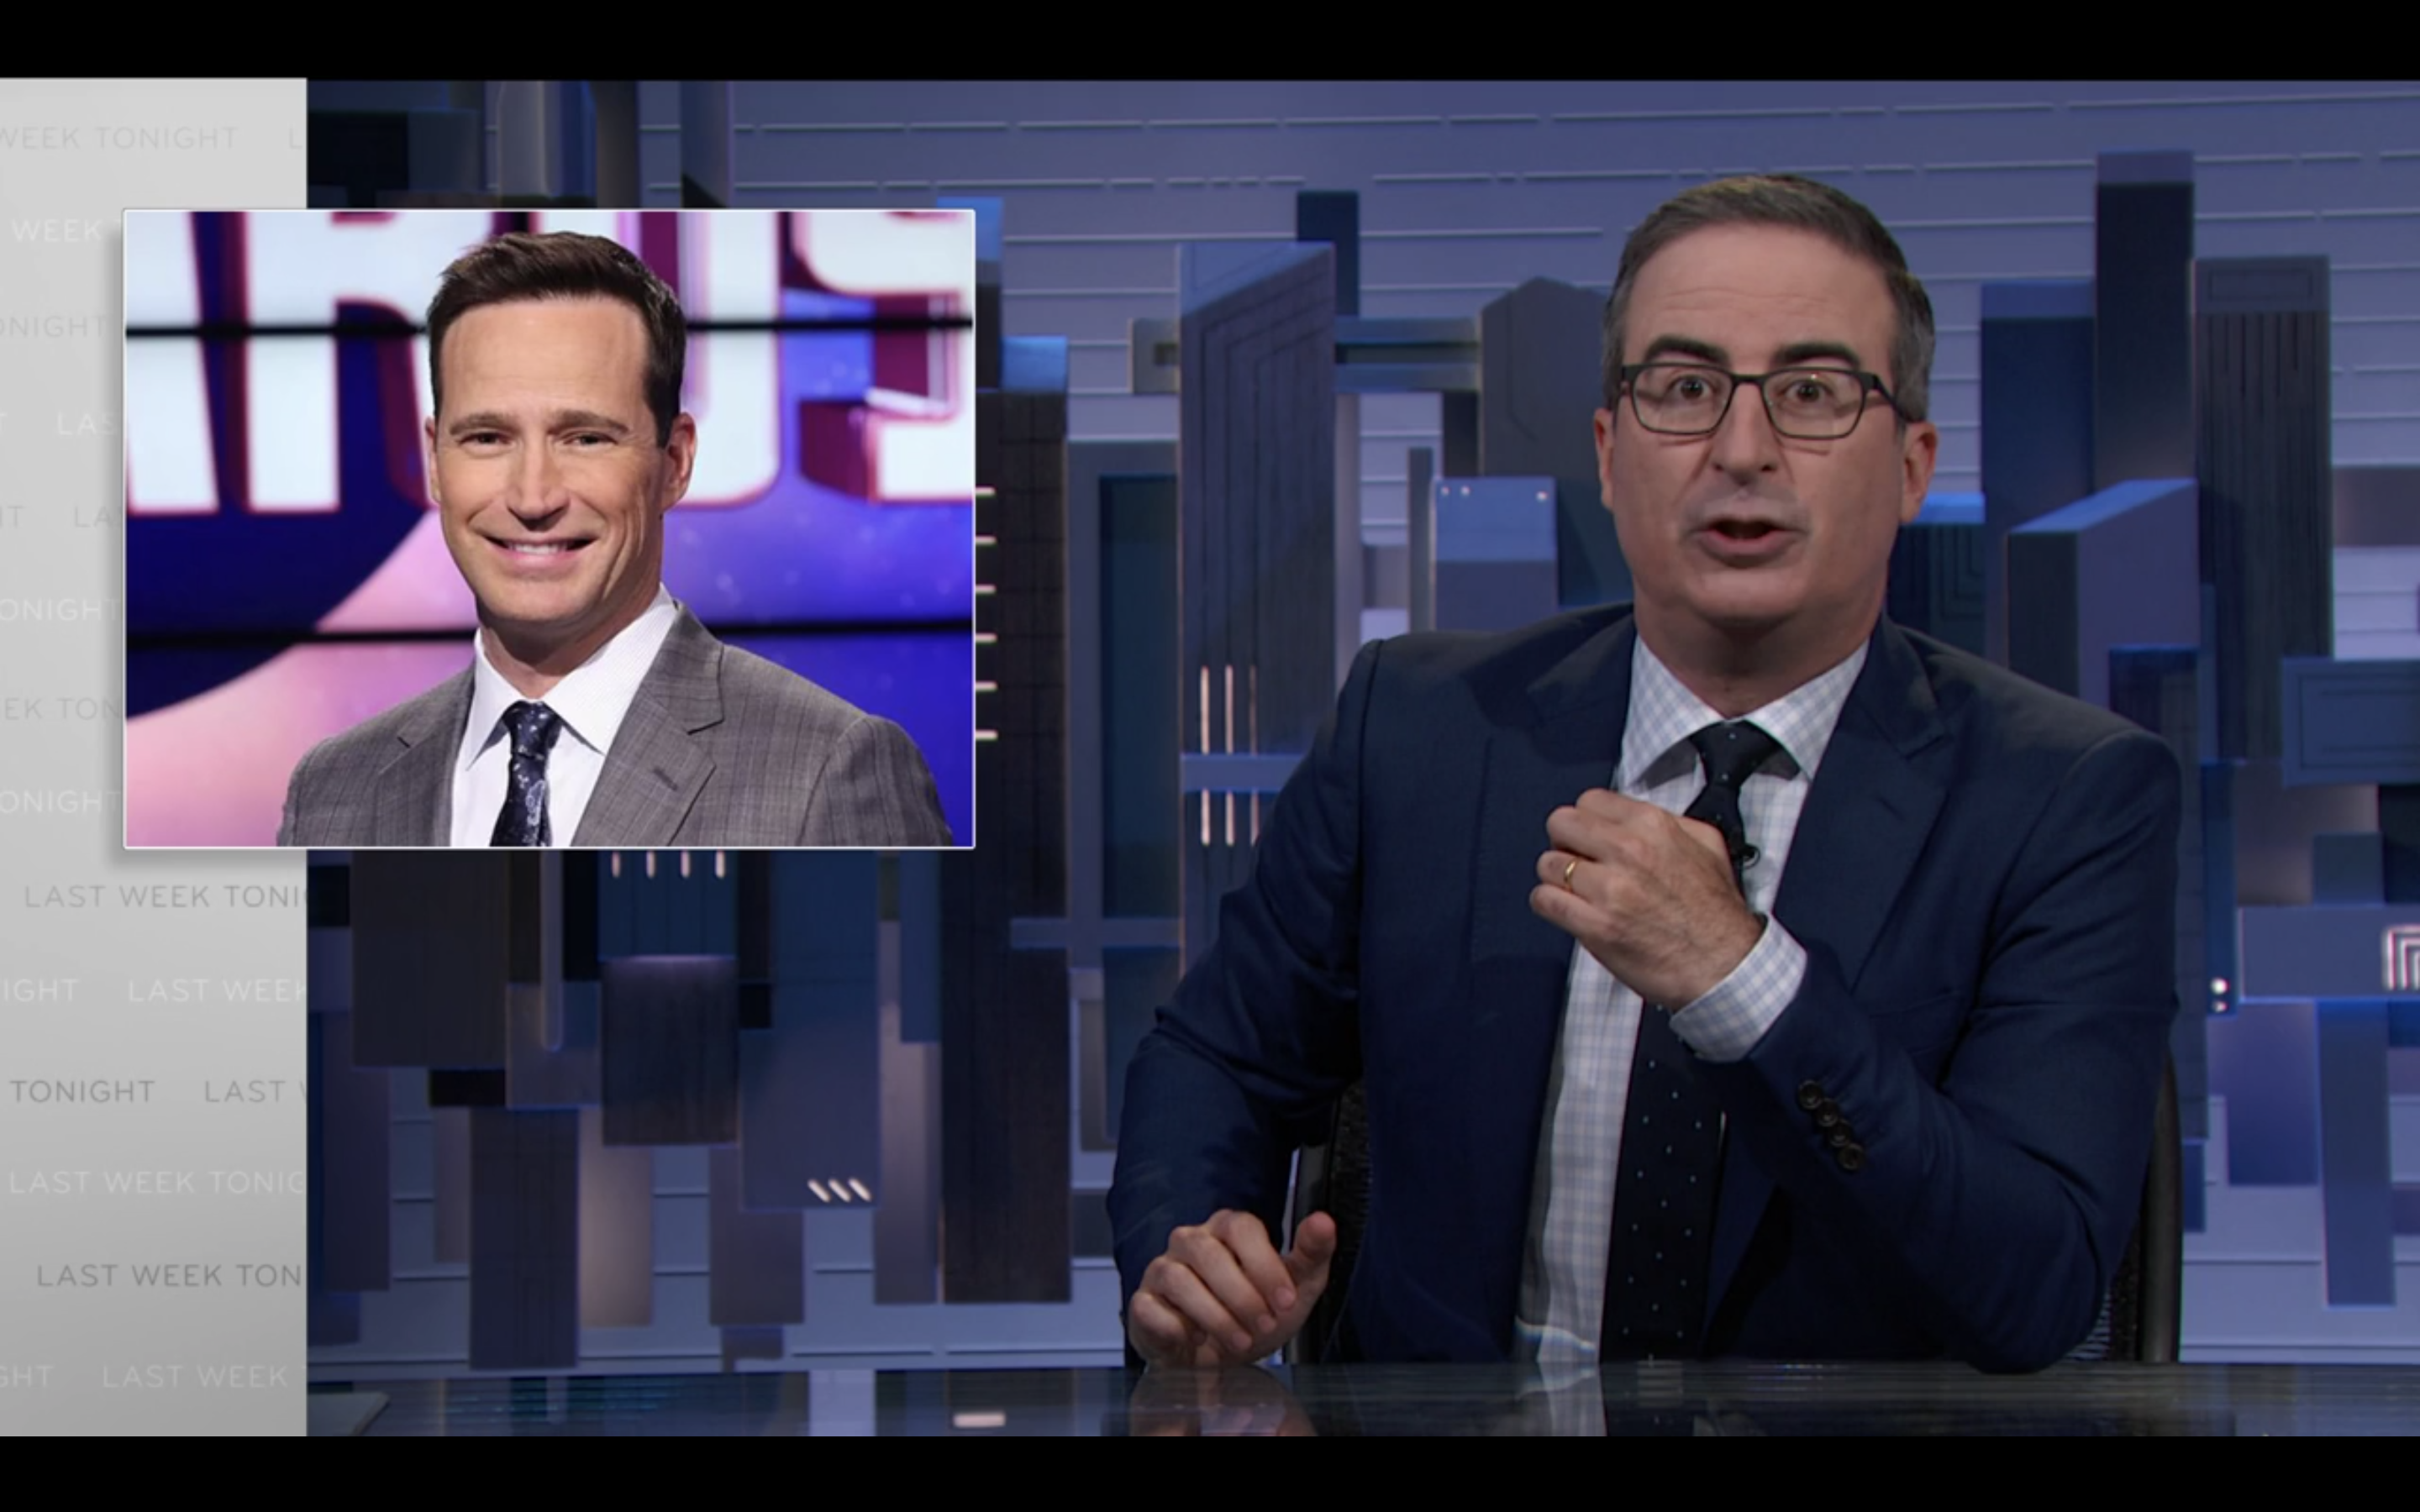 'Last Week Tonight With John Oliver' Likens Abysmal Response To Del Rio Scandal To 'Jeopardy!' Hiring Controversy